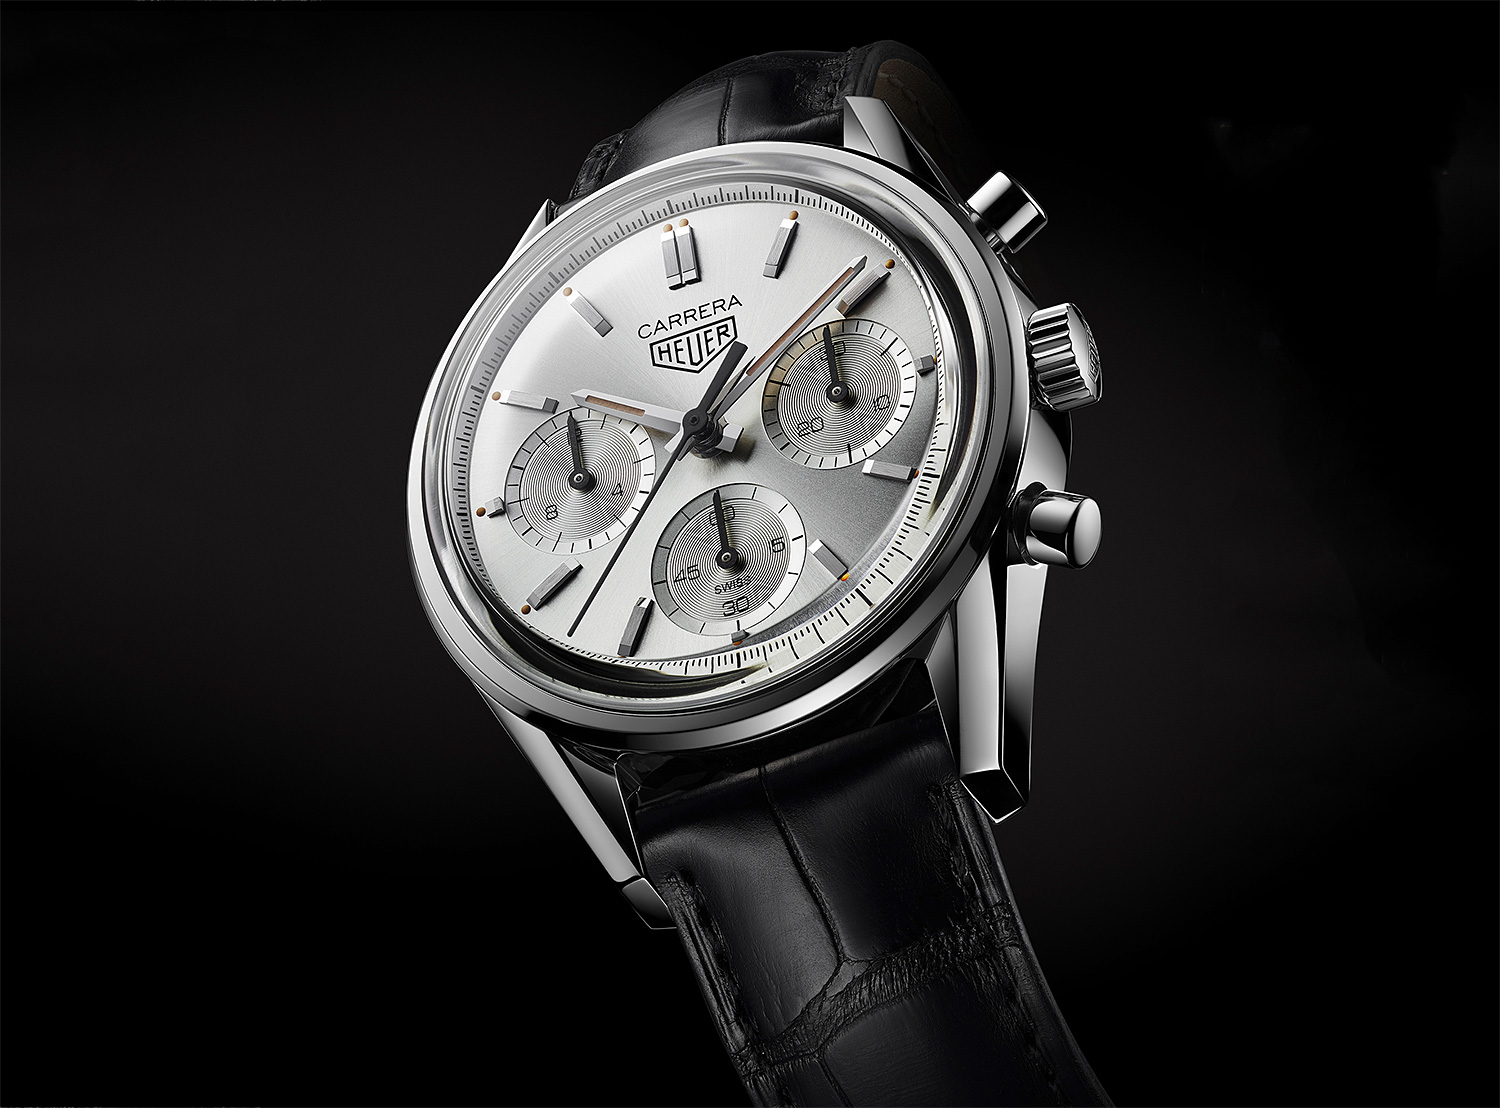 Tag Heuer Looks Really Good for 160 Years Old at werd.com